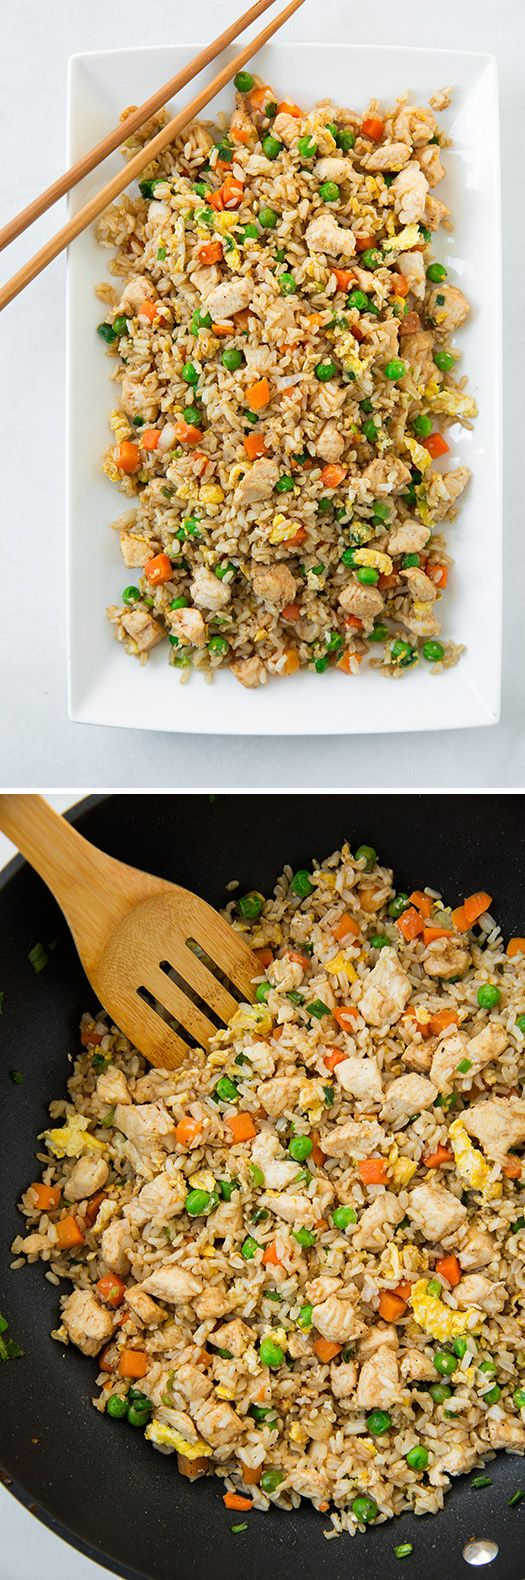 Chicken Fried Rice - better than take-out and healthier too! Made with brown rice and chicken. A staple recipe!